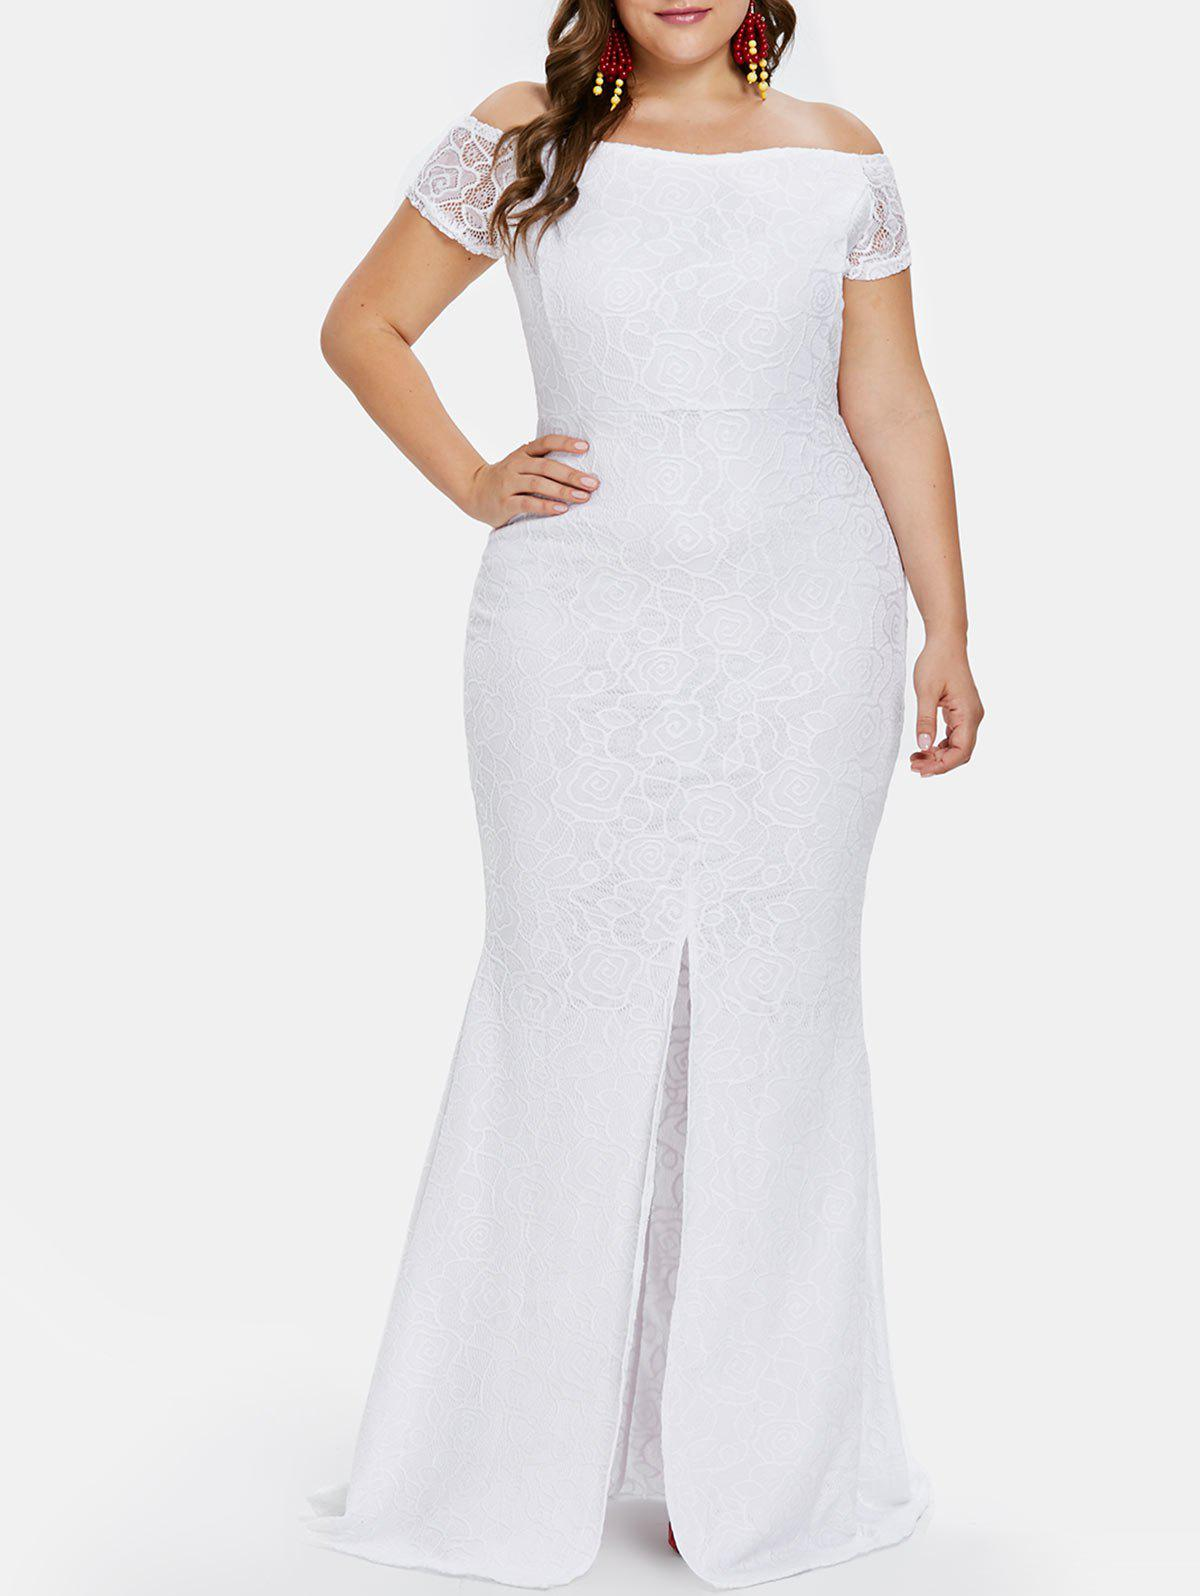 125c9c3a7129 2019 Plus Size OFF Shoulder Lace Maxi Dress